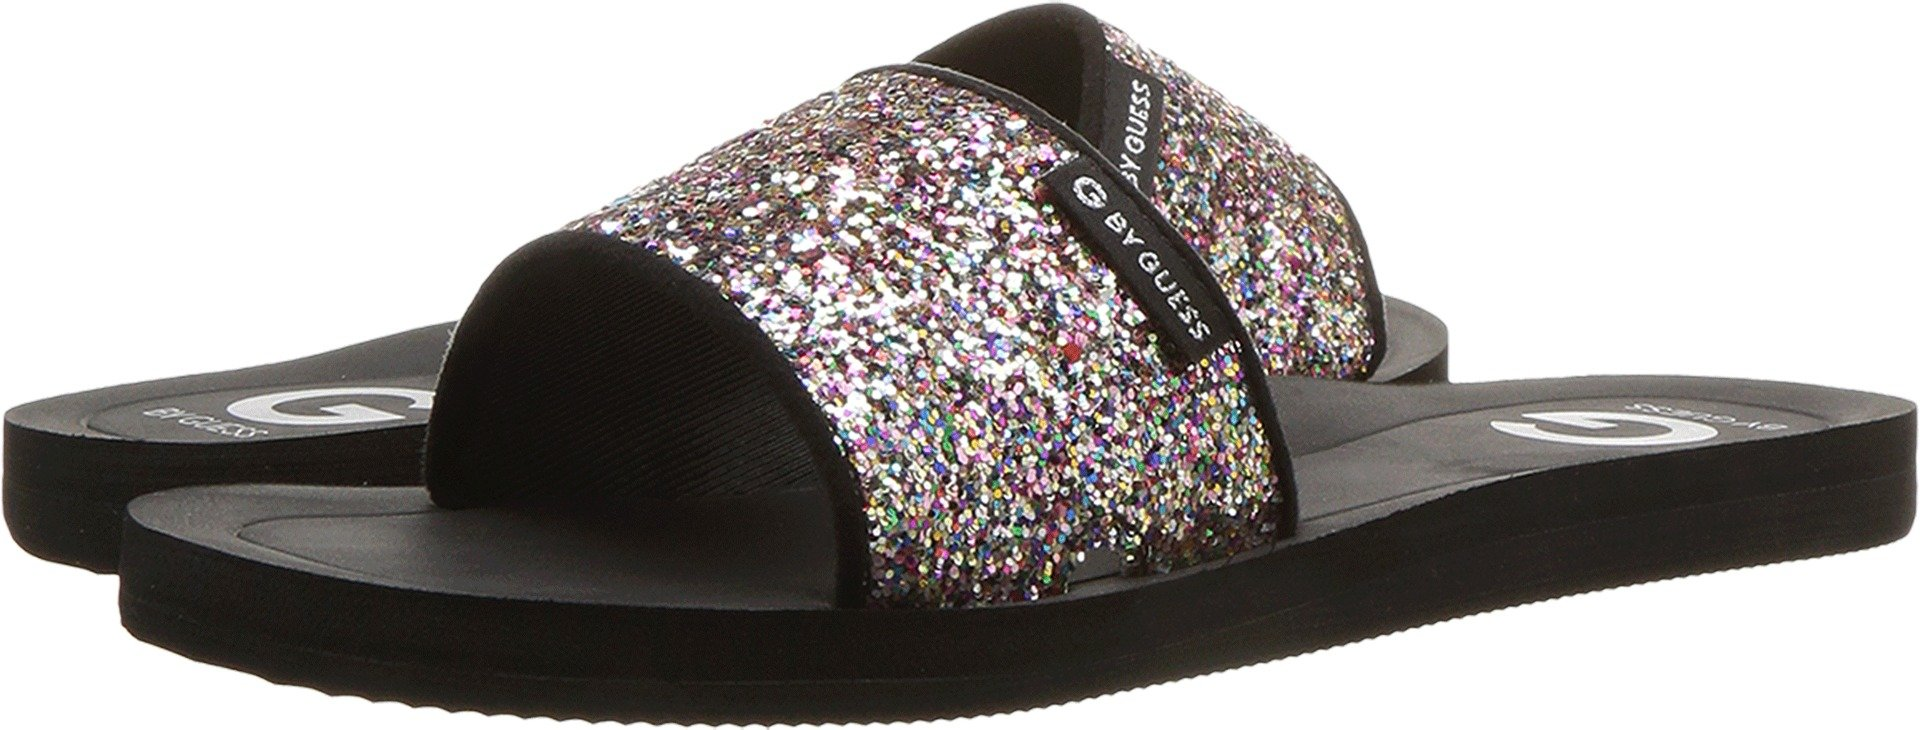 G by GUESS Women's Tomies Rainbow Glitter 7 M US